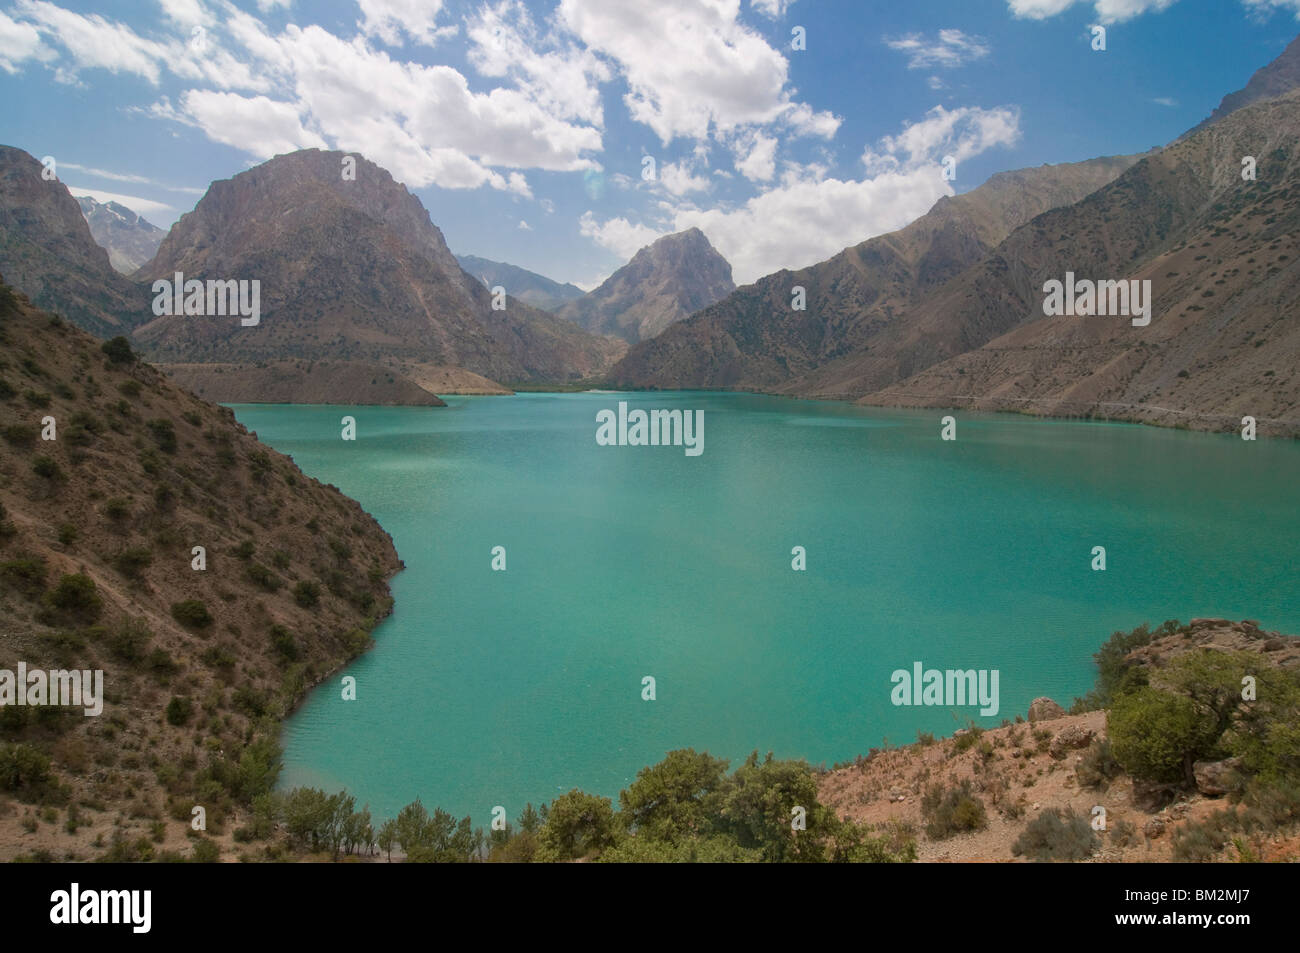 Turquoise Alexander Lake (Iskanderkul Lake) in Fann Mountains, Tajikistan - Stock Image